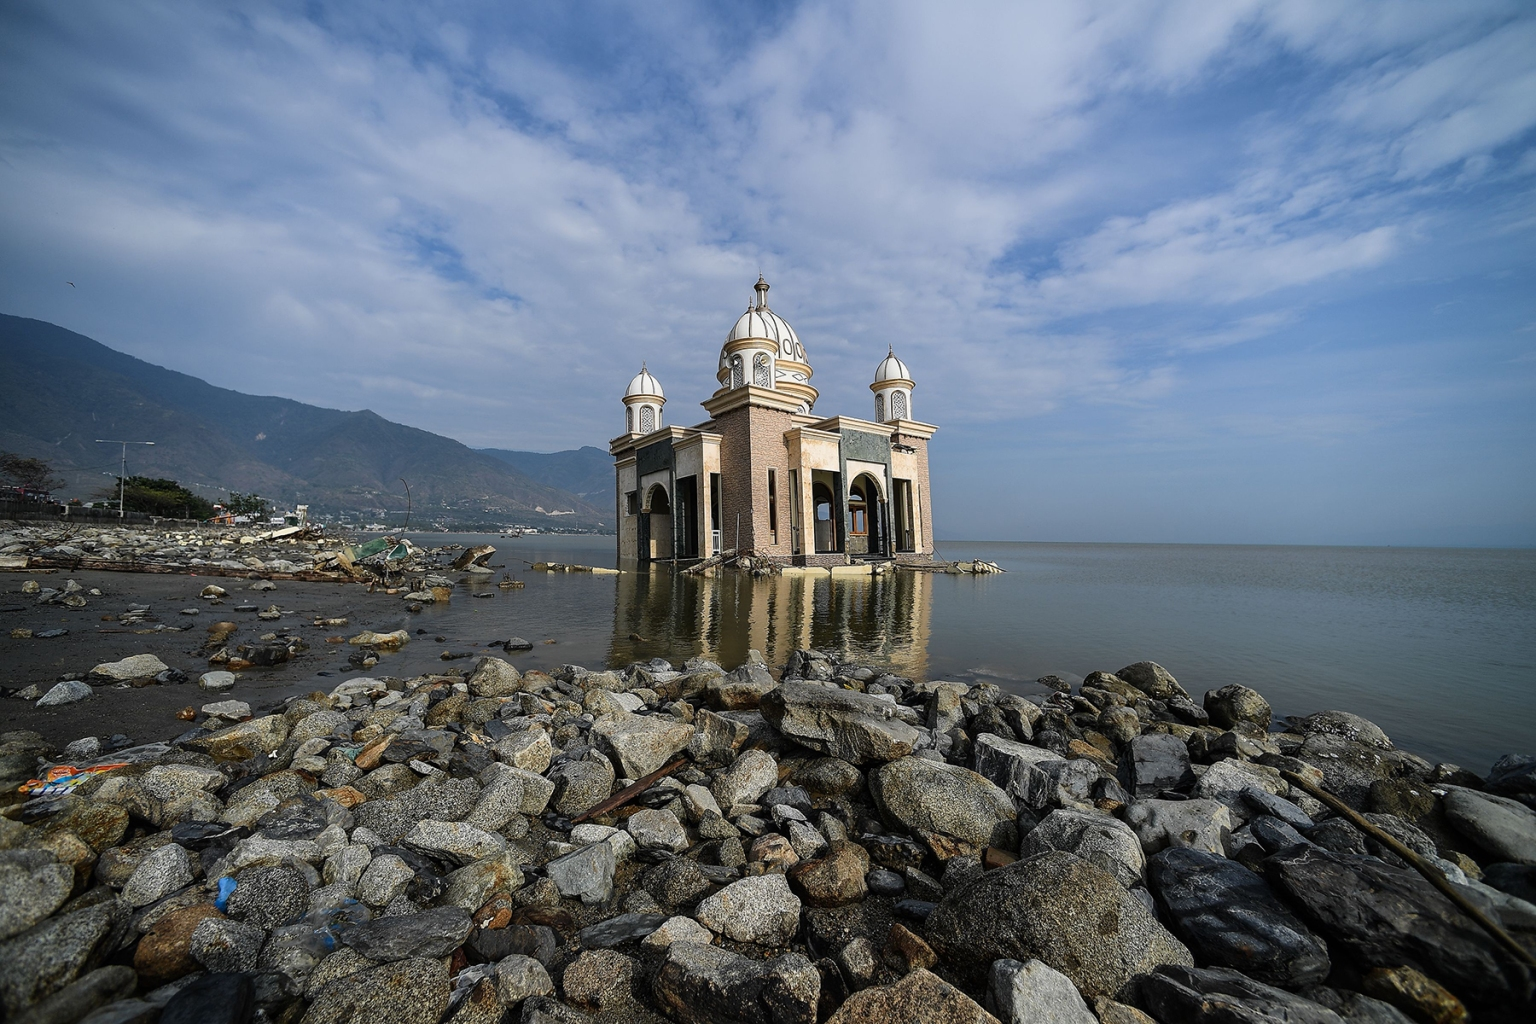 A damaged mosque is seen by the tsunami-devastated coast in Palu, in Indonesia's Central Sulawesi, on Oct. 4. Mohd Rasfan/AFP/Getty Images